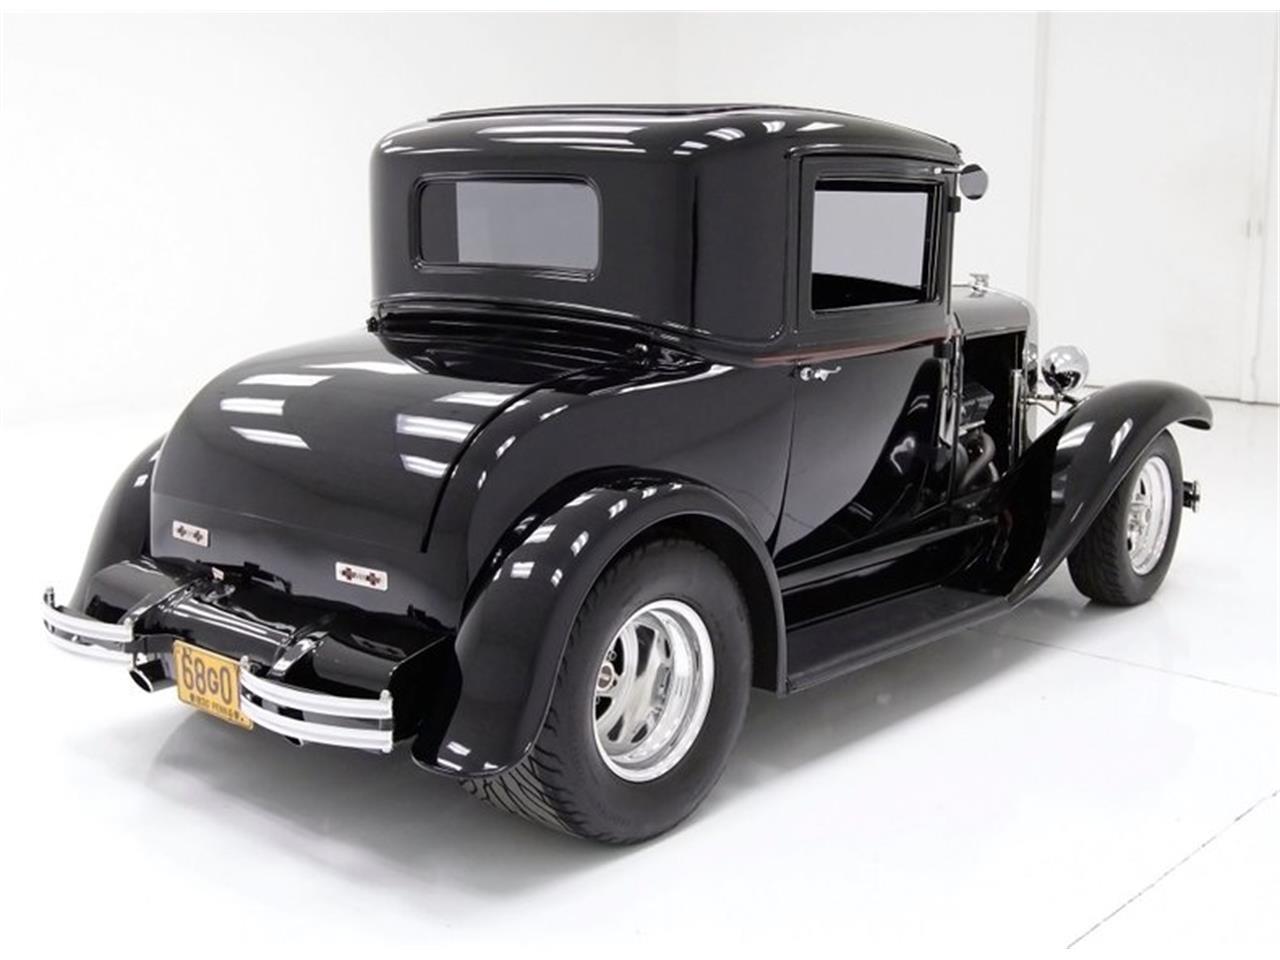 1930 Chevrolet 3-Window Coupe for sale in Morgantown, PA – photo 8